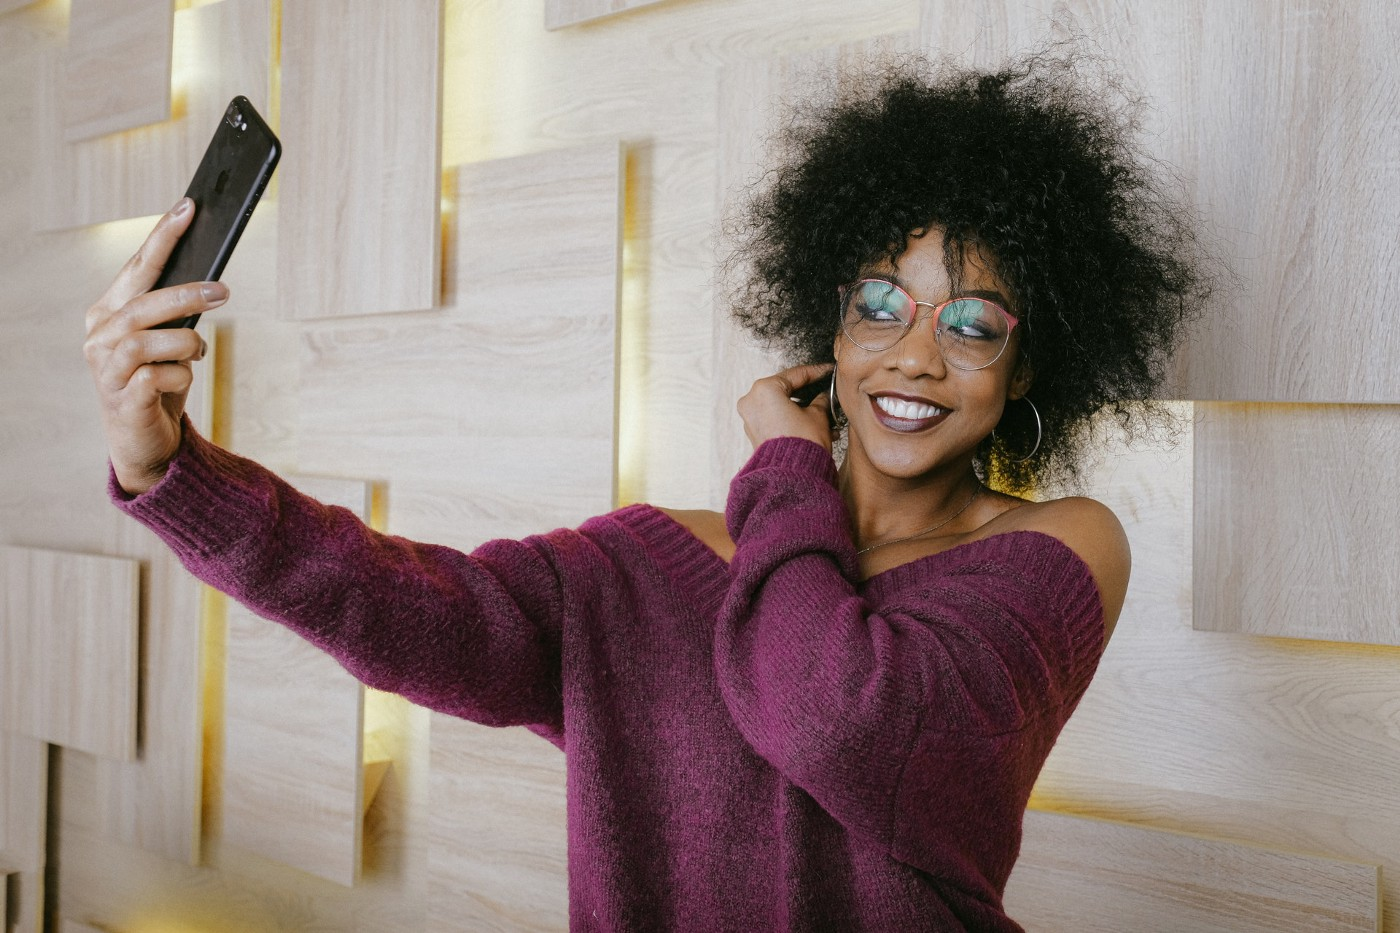 woman in purple shirt takes selfie with phone